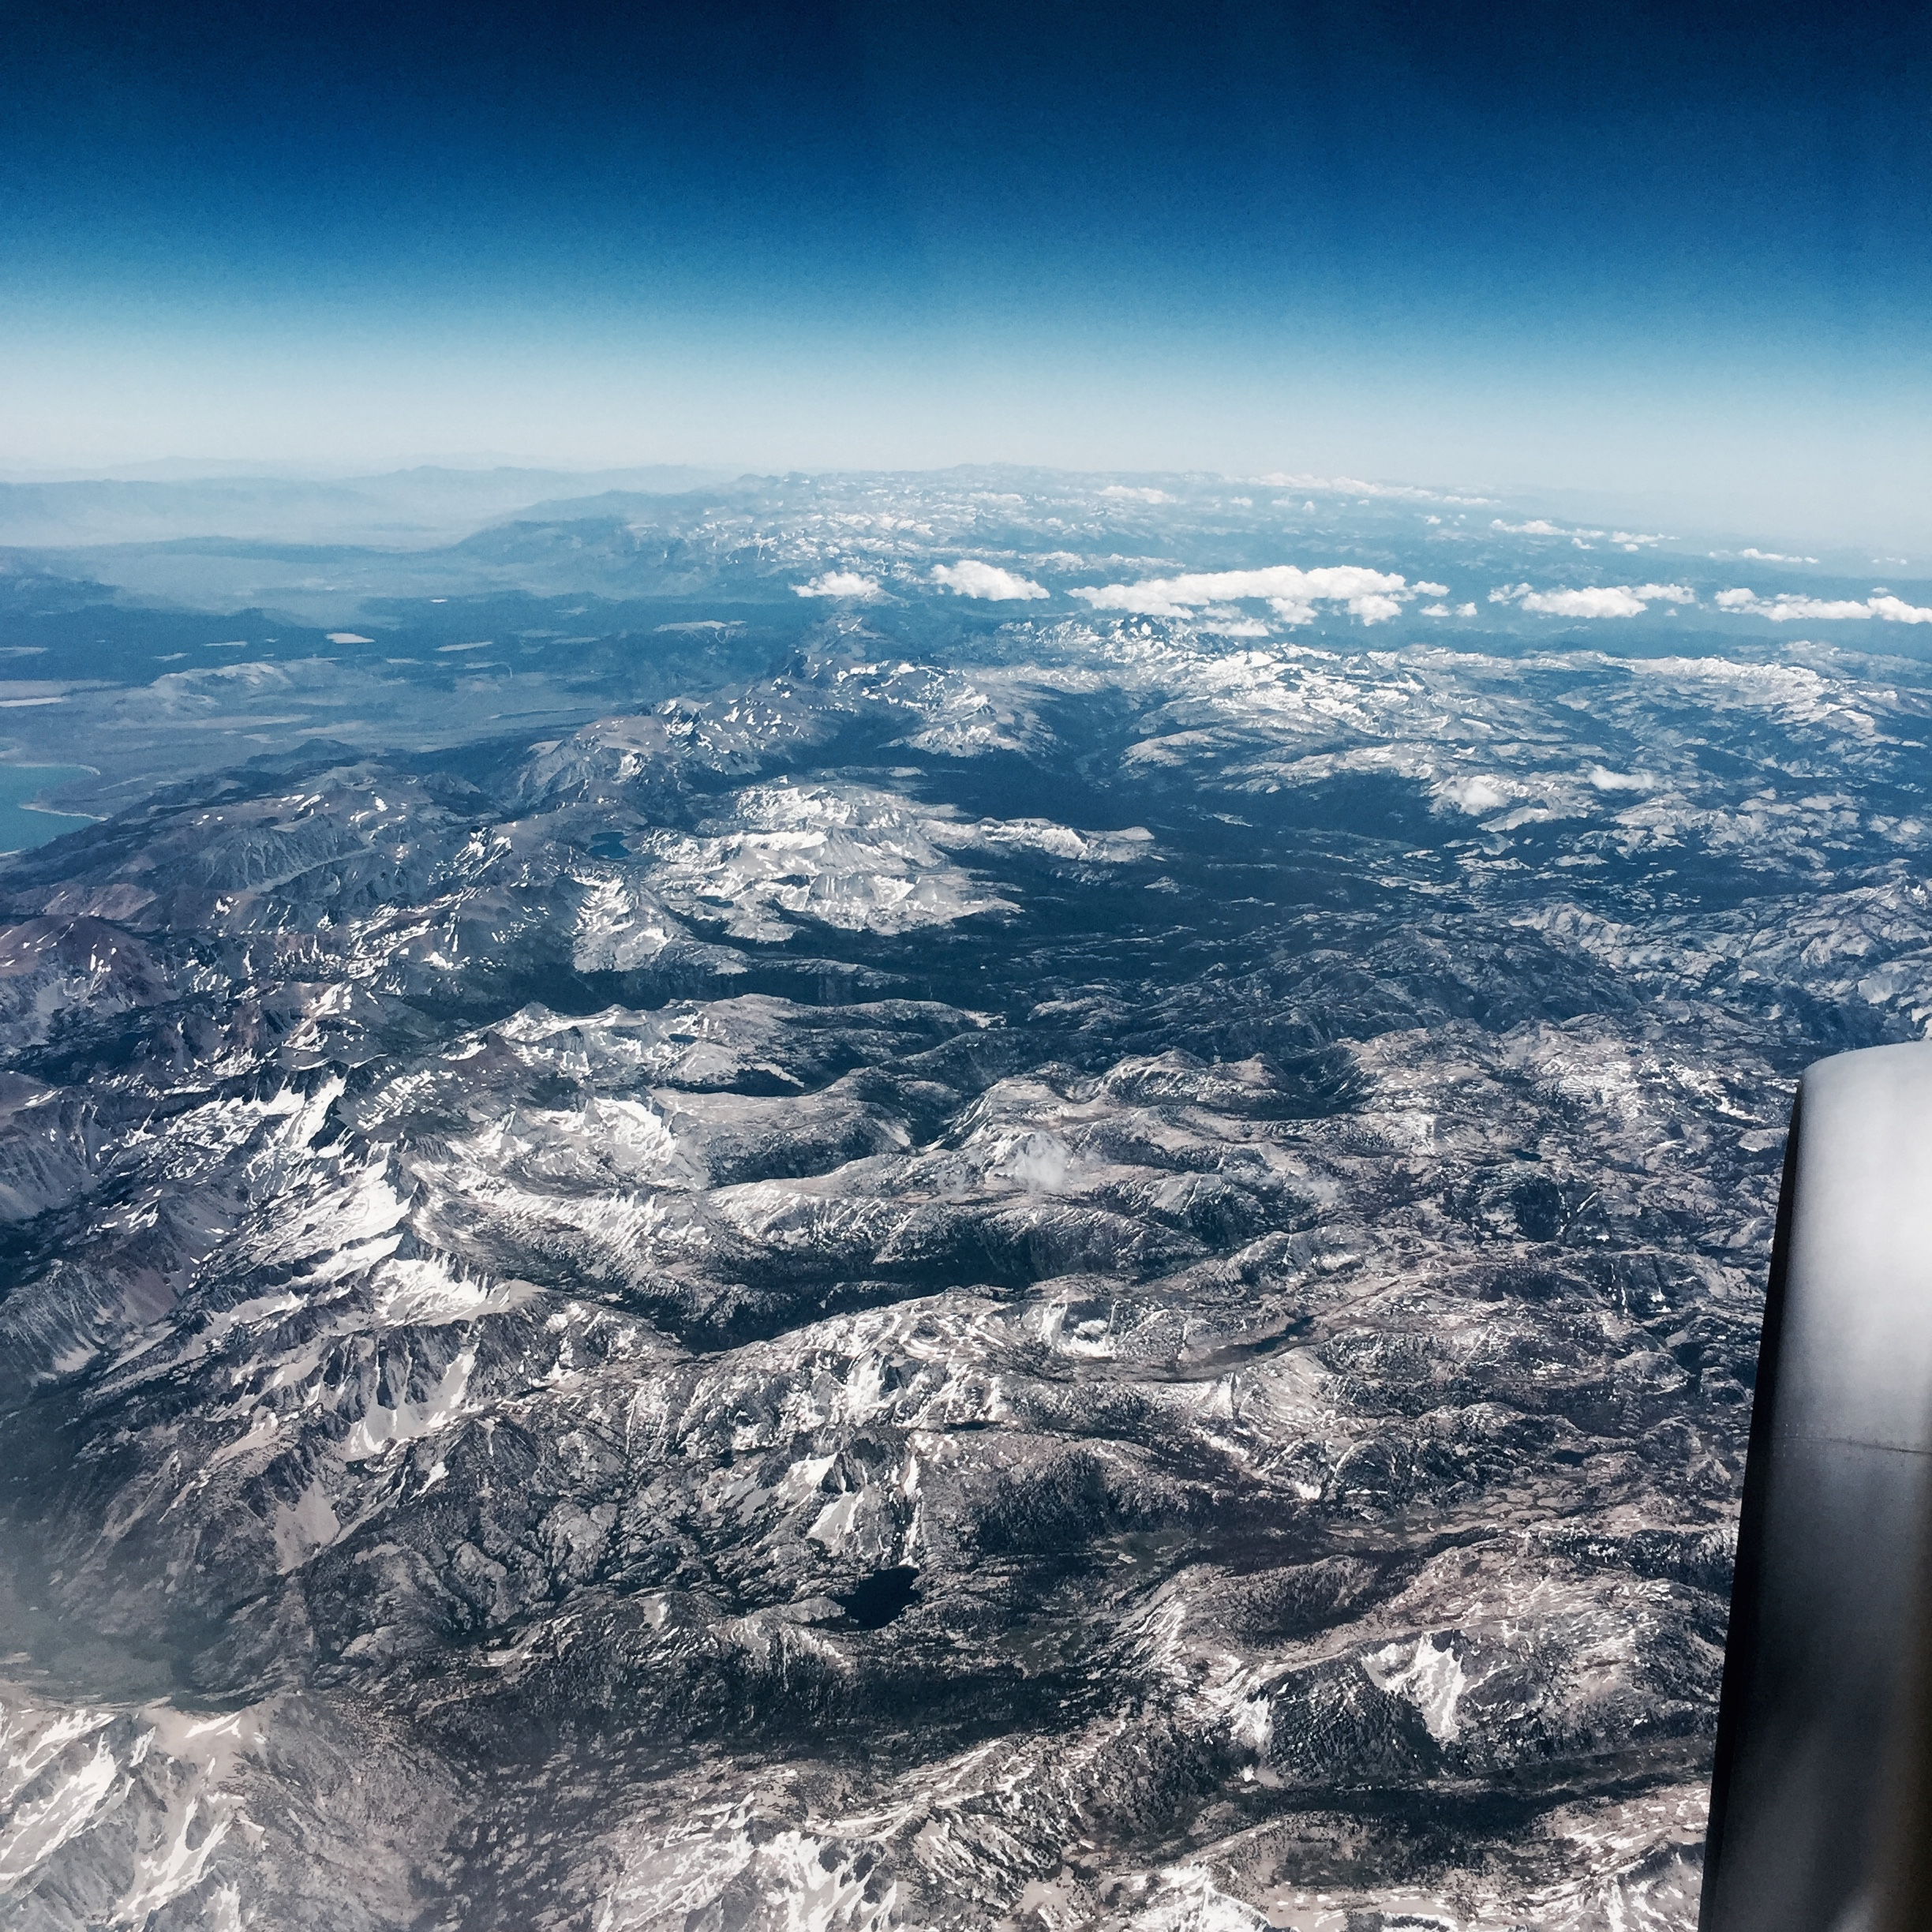 When we started flying, the pilot pointed out that there was still snow on the mountains